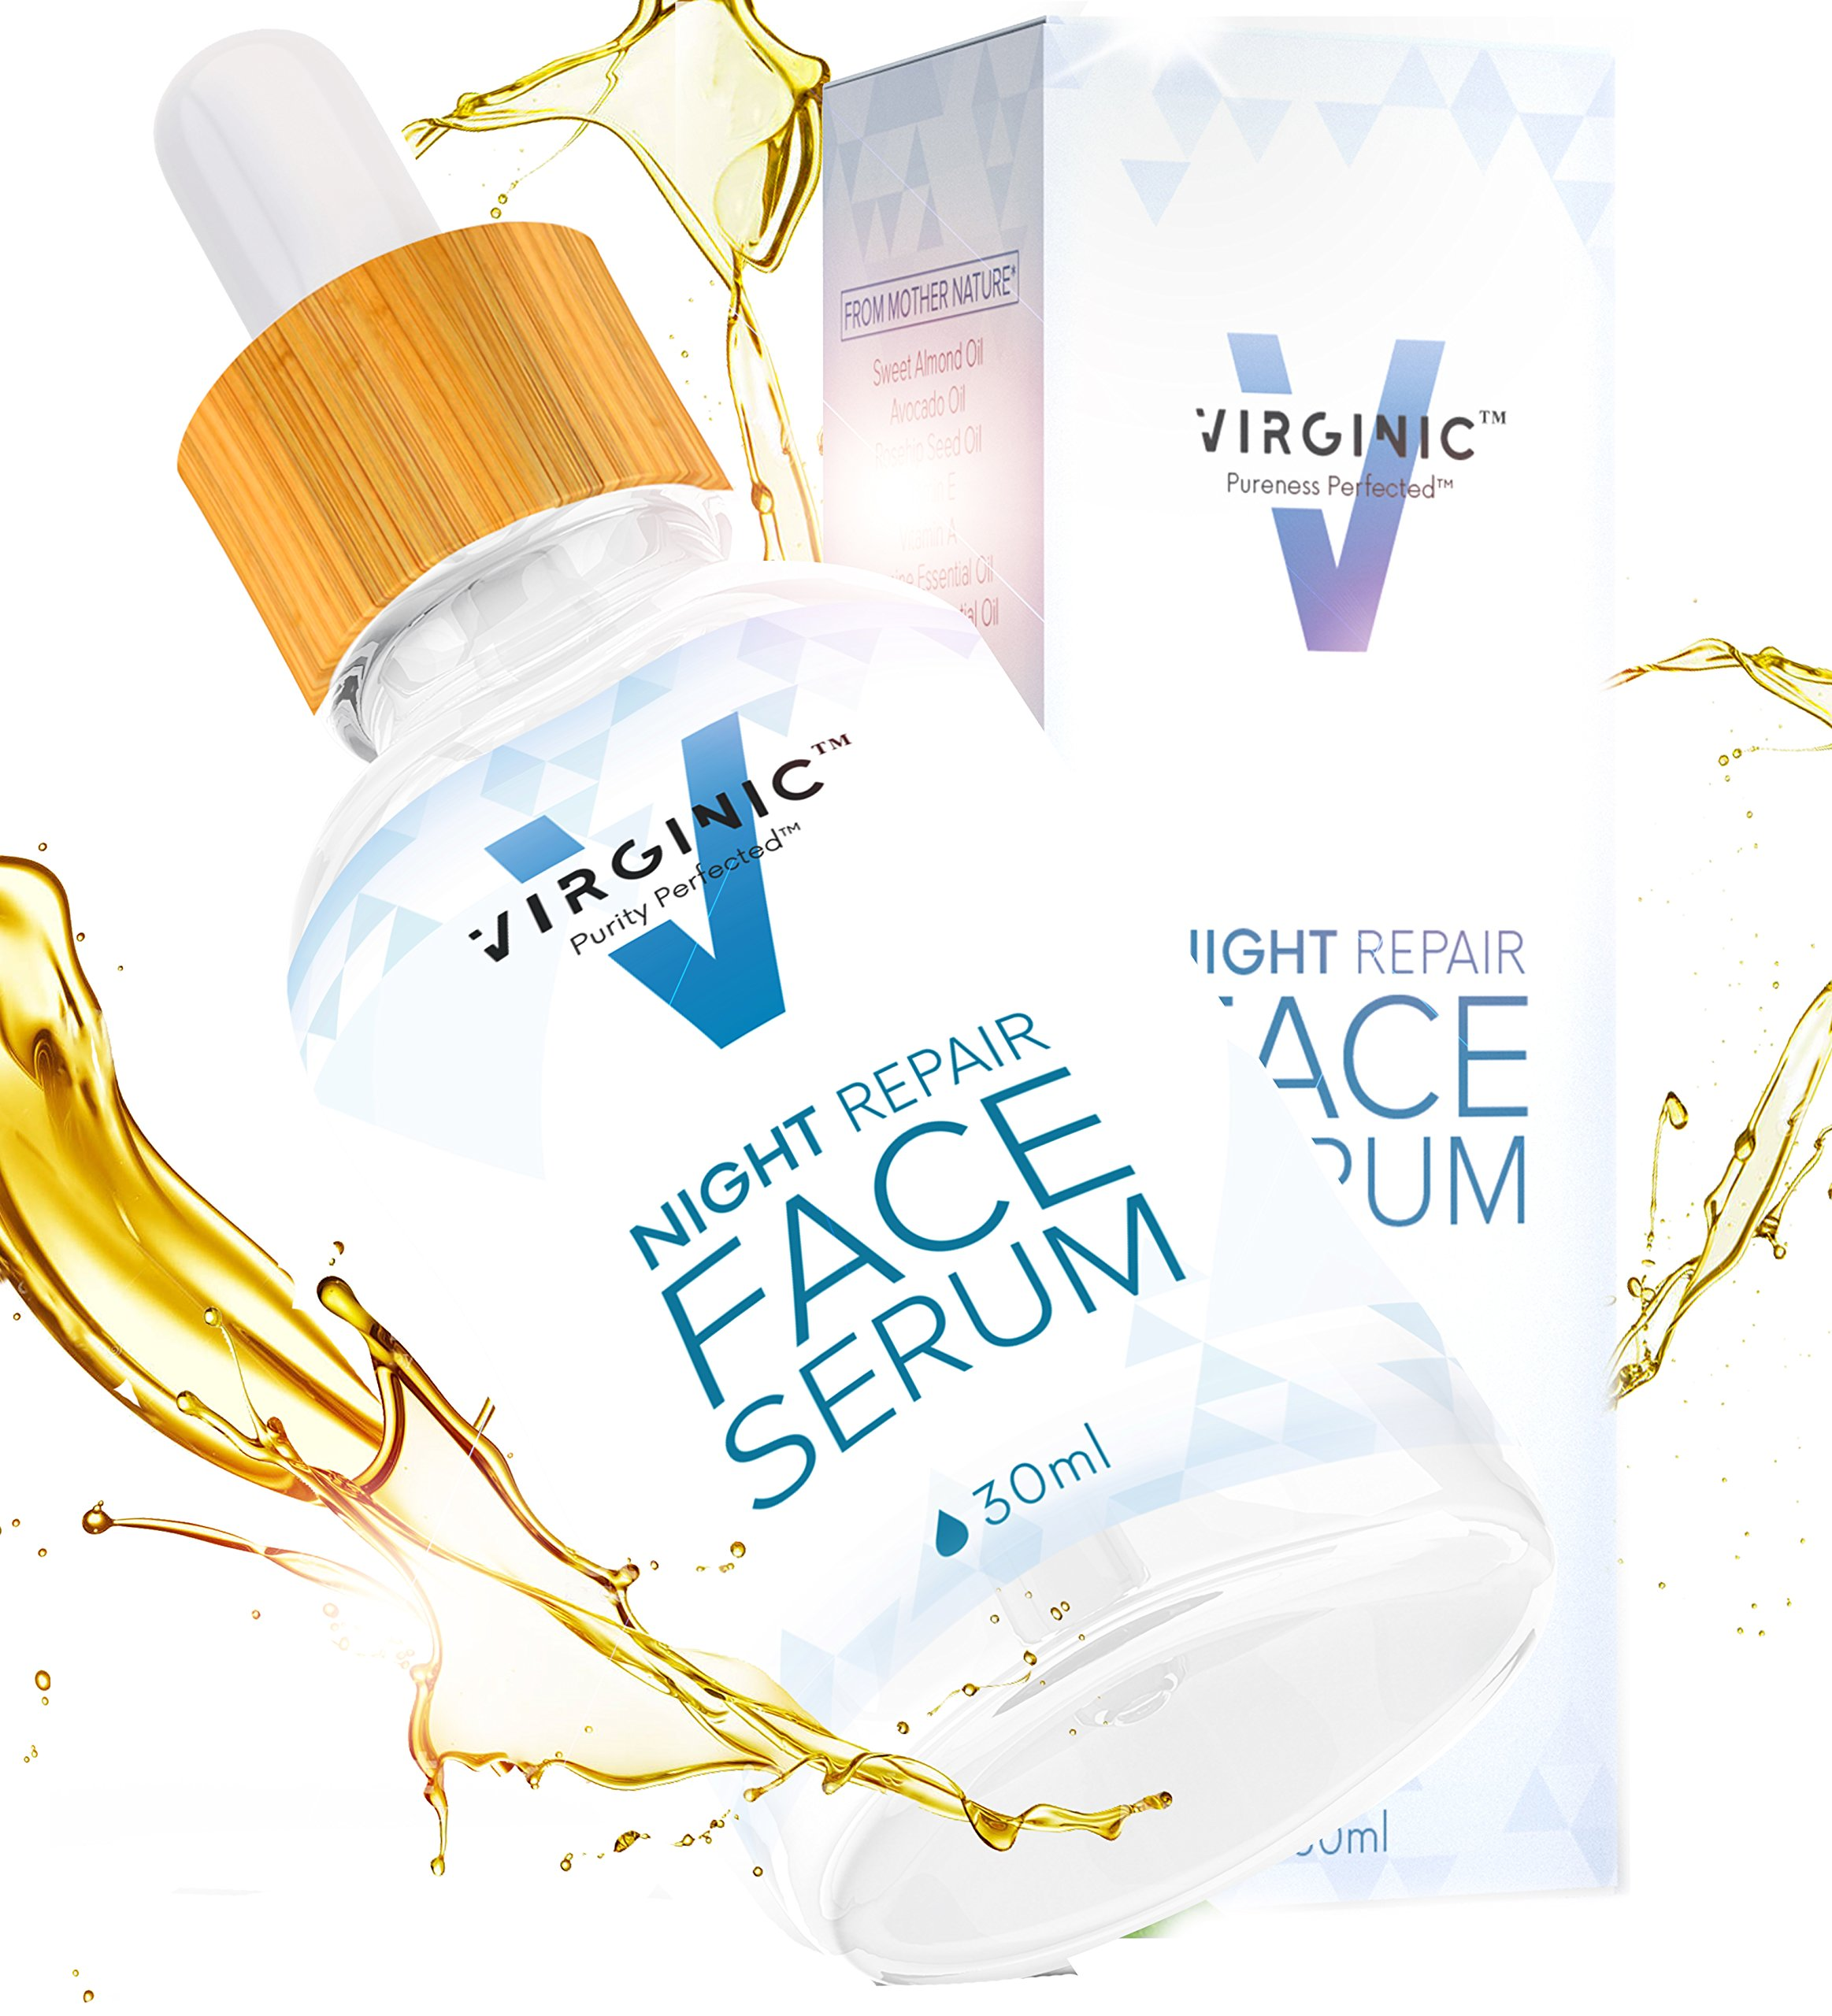 Night Face Serum Anti Aging 1 OZ With Oil Moisturizer Eye Body Best For Women Men Oily Dry Sensitive Skin Wrinkles Natural Retinol Above Organic Facial Vegan Neck Repair Cream Lotion Acne Collagen